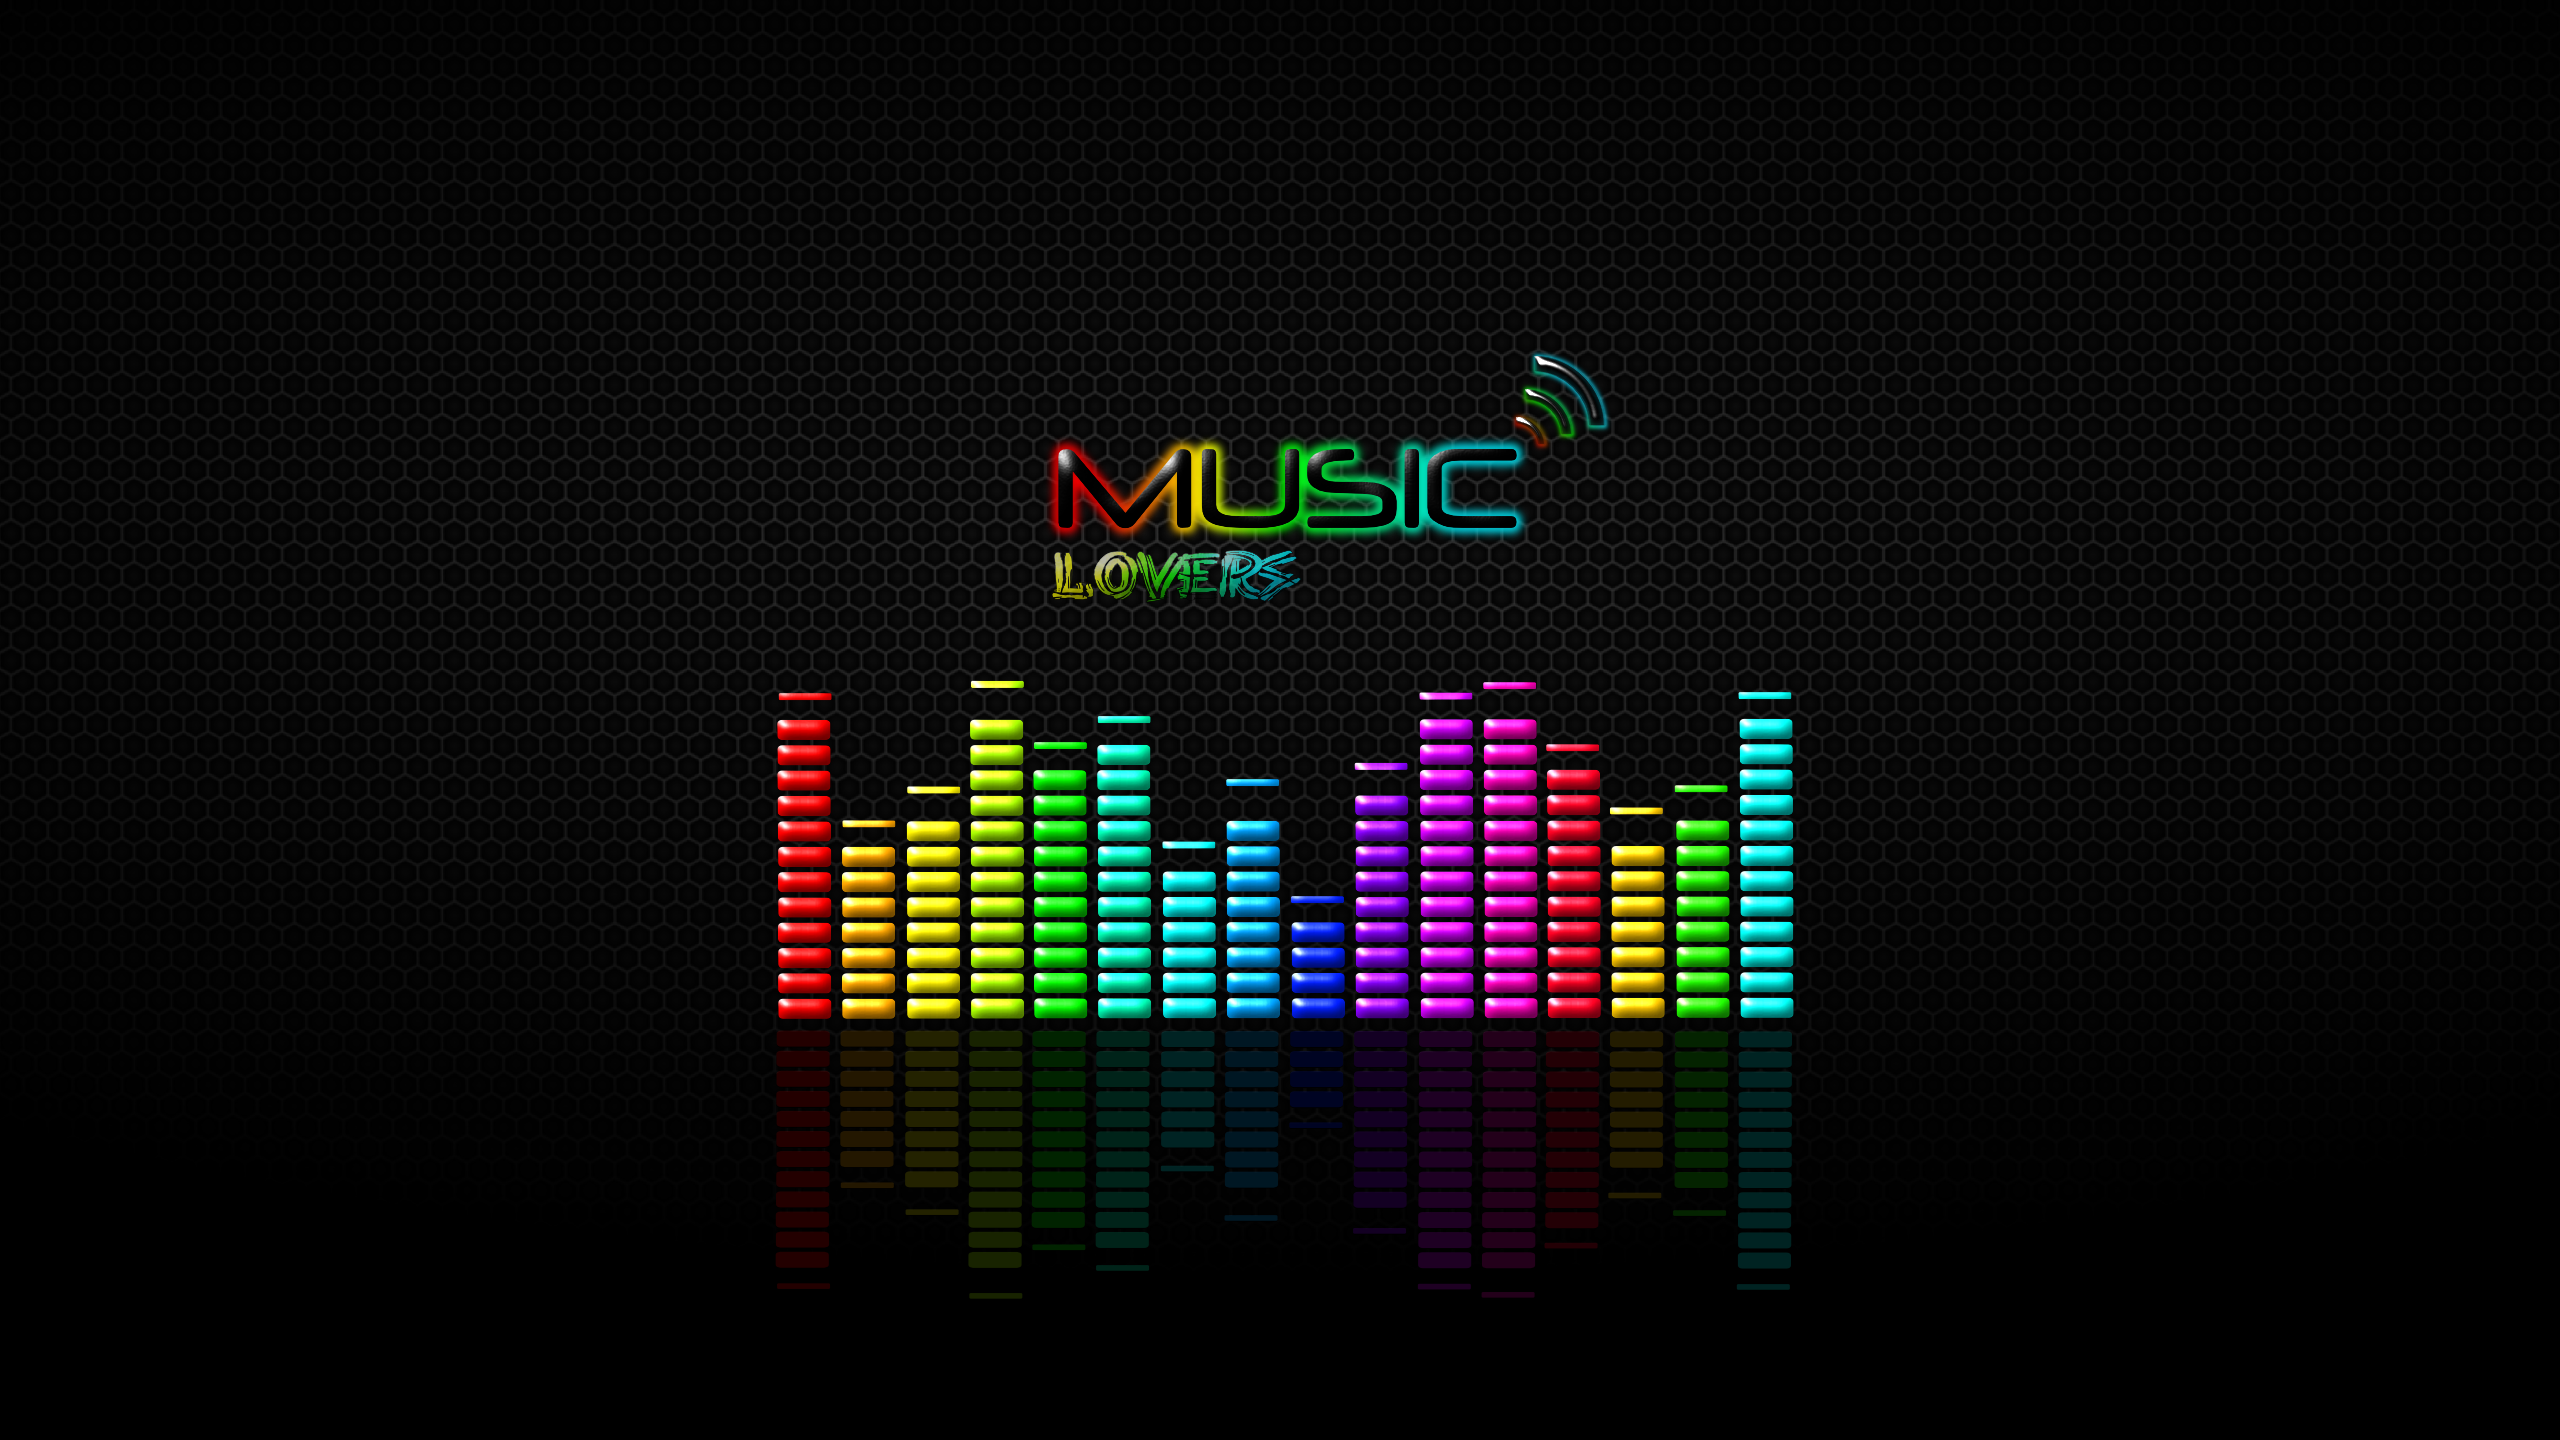 2560x1440 Music Lovers YouTube Channel Cover